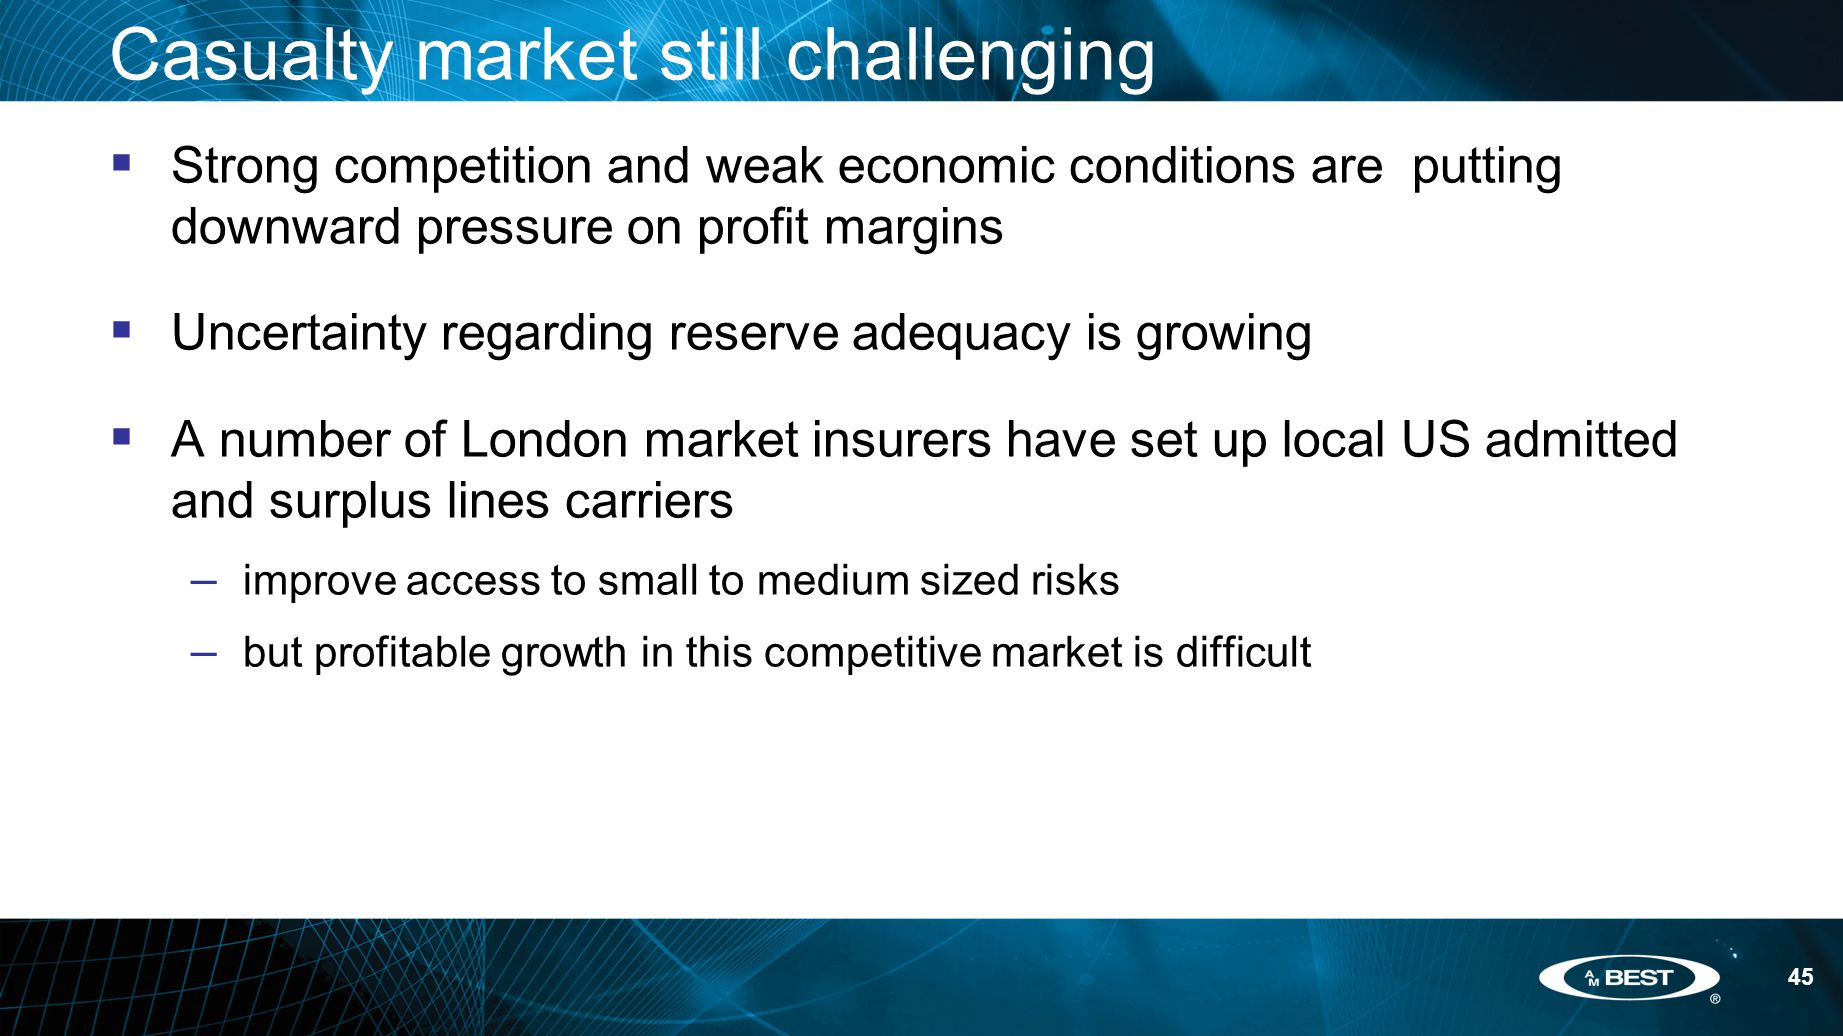 45 Casualty market still challenging  Strong competition and weak economic conditions are putting downward pressure on profit margins  Uncertainty regarding reserve adequacy is growing  A number of London market insurers have set up local US admitted and surplus lines carriers – improve access to small to medium sized risks – but profitable growth in this competitive market is difficult